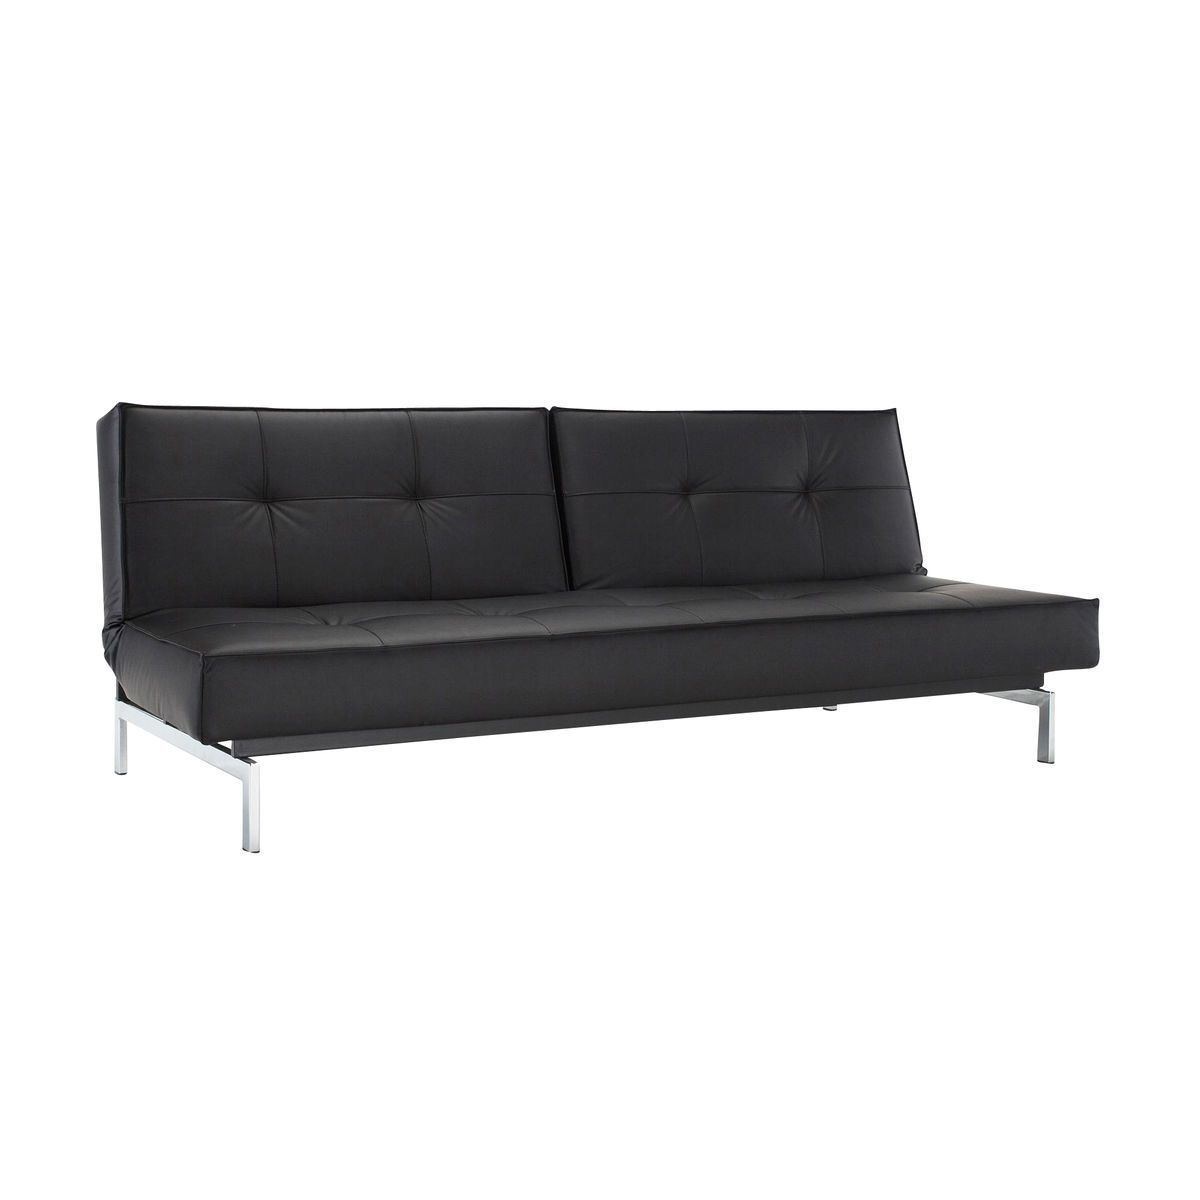 Splitback sofa bed chrome innovation ambientedirectcom for Sofa bed dimensions unfolded